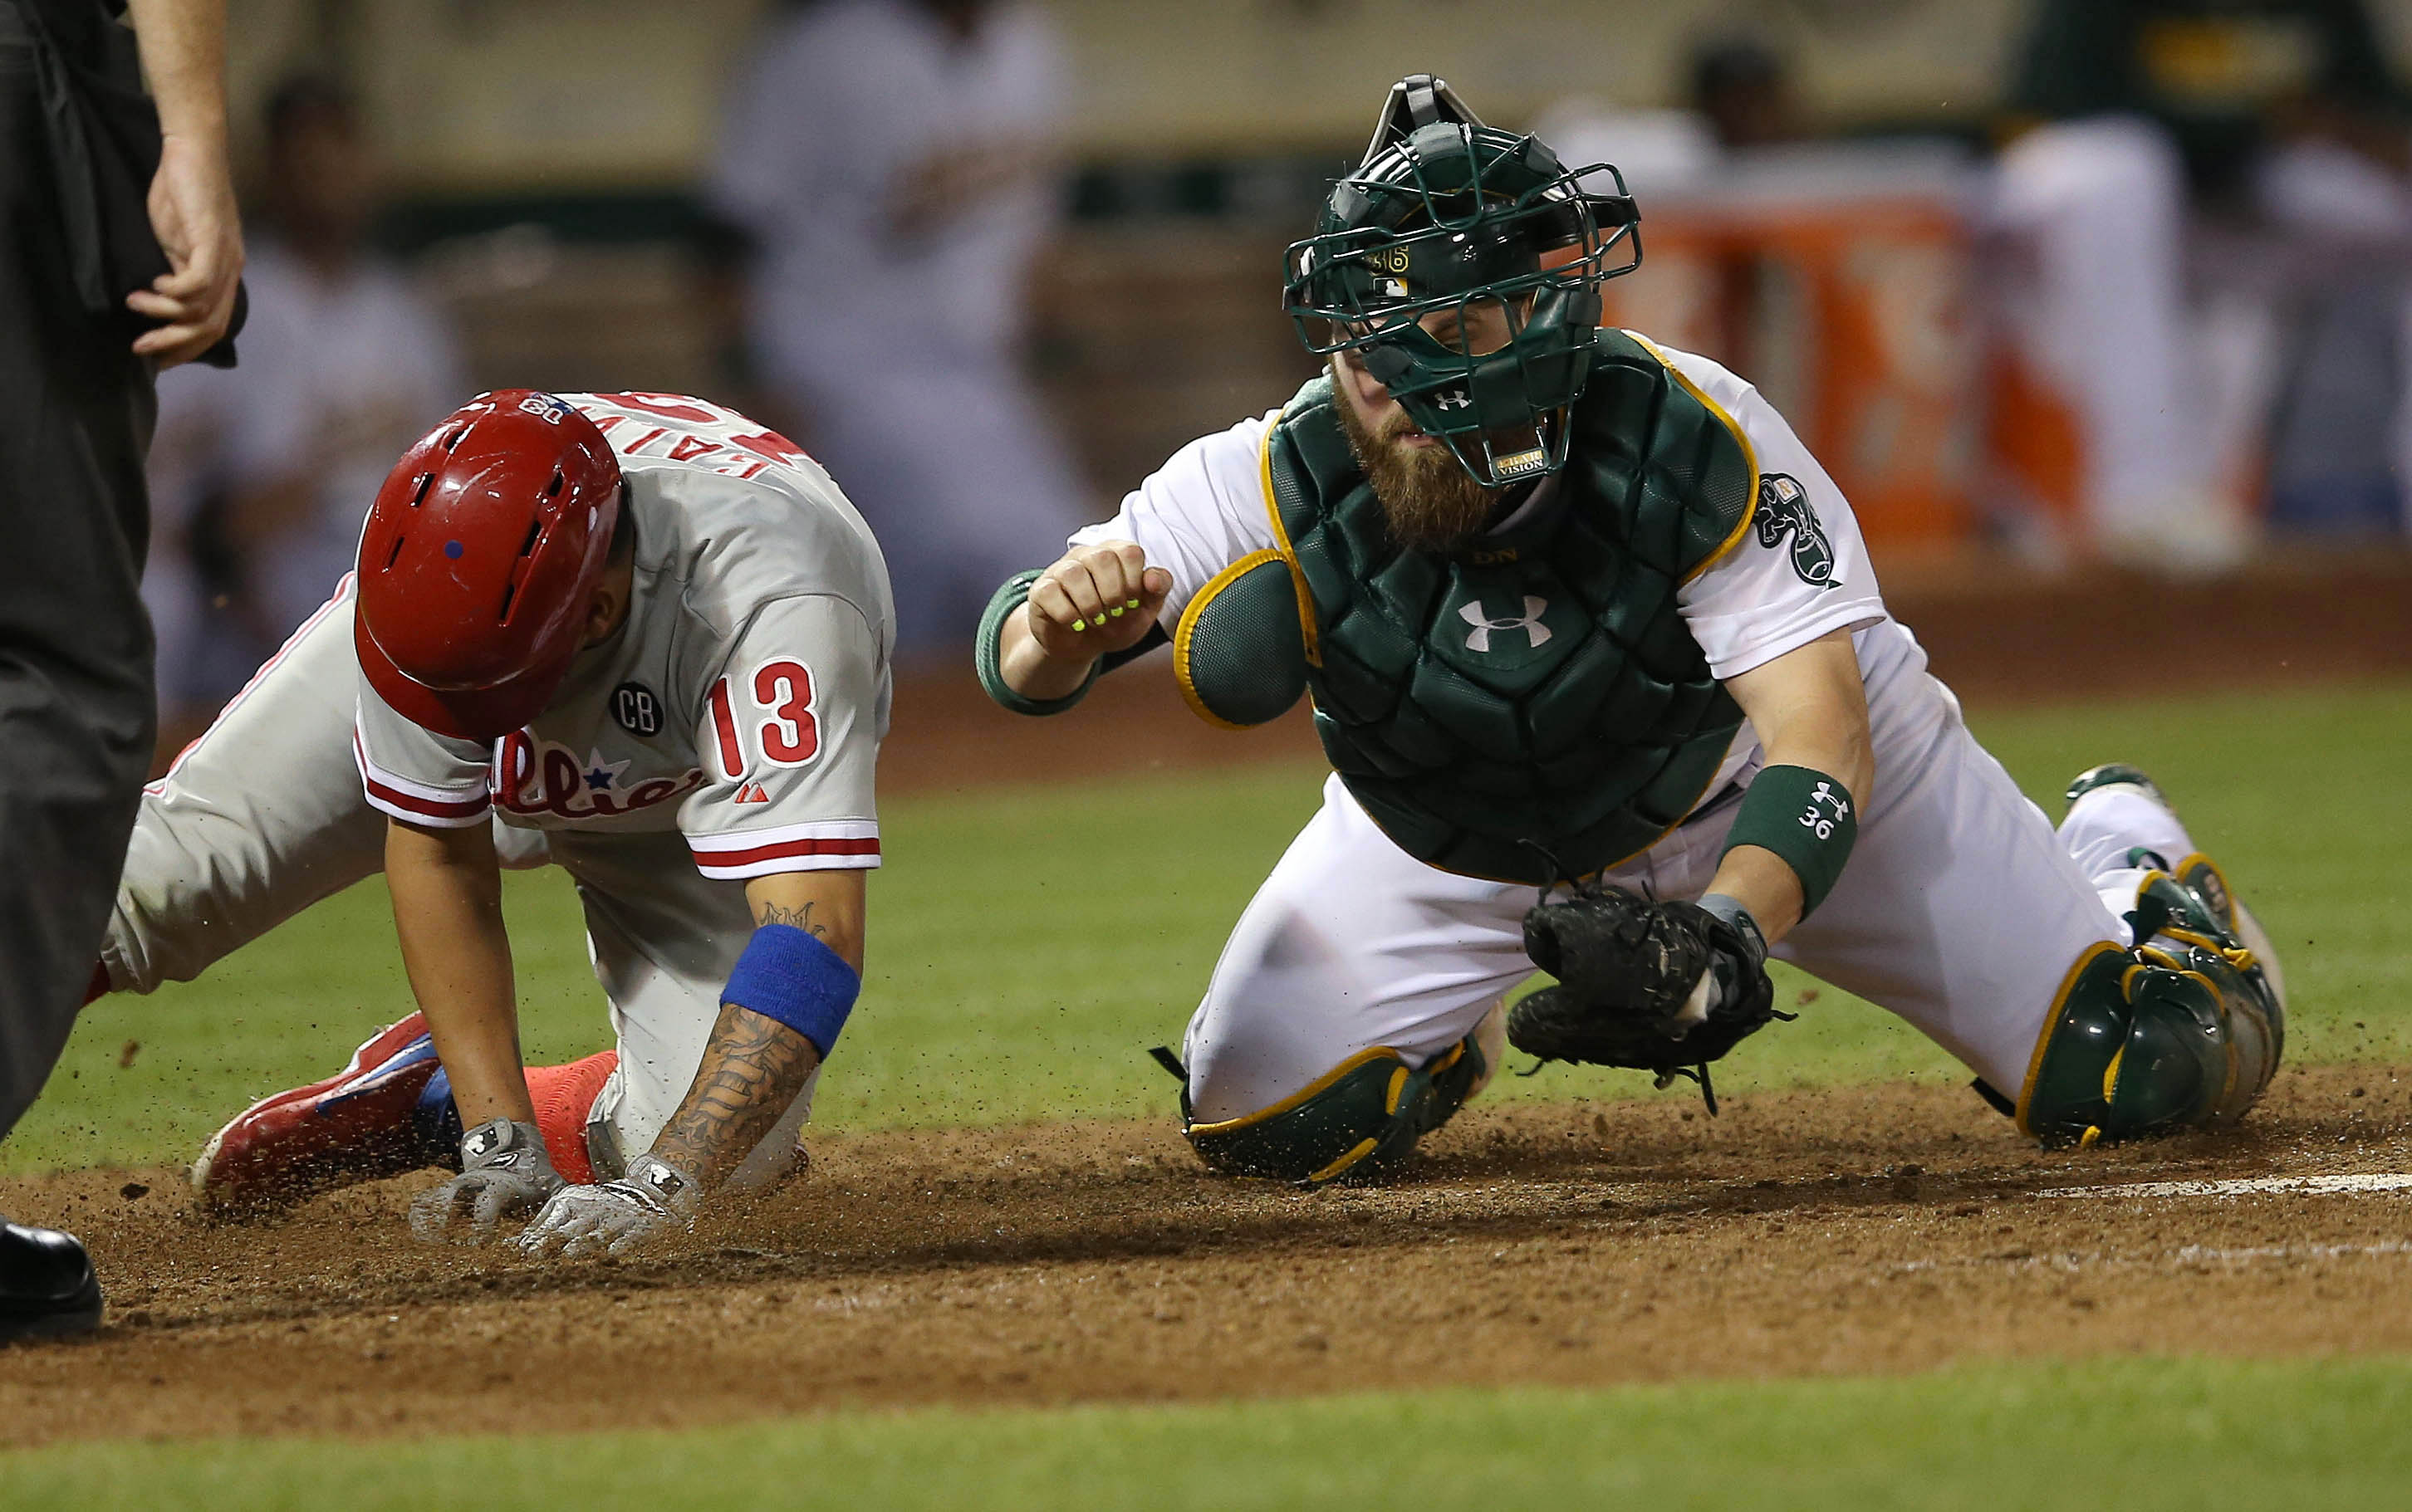 Oakland Athletics catcher Derek Norris (36) loses his mask as he tags out Philadelphia Phillies third baseman Freddy Galvis (13) in the eighth inning of their MLB game at O.co Coliseum in Oakland, Calif., on Friday, Sept. 19, 2014. (Jane Tyska/Bay Area Ne